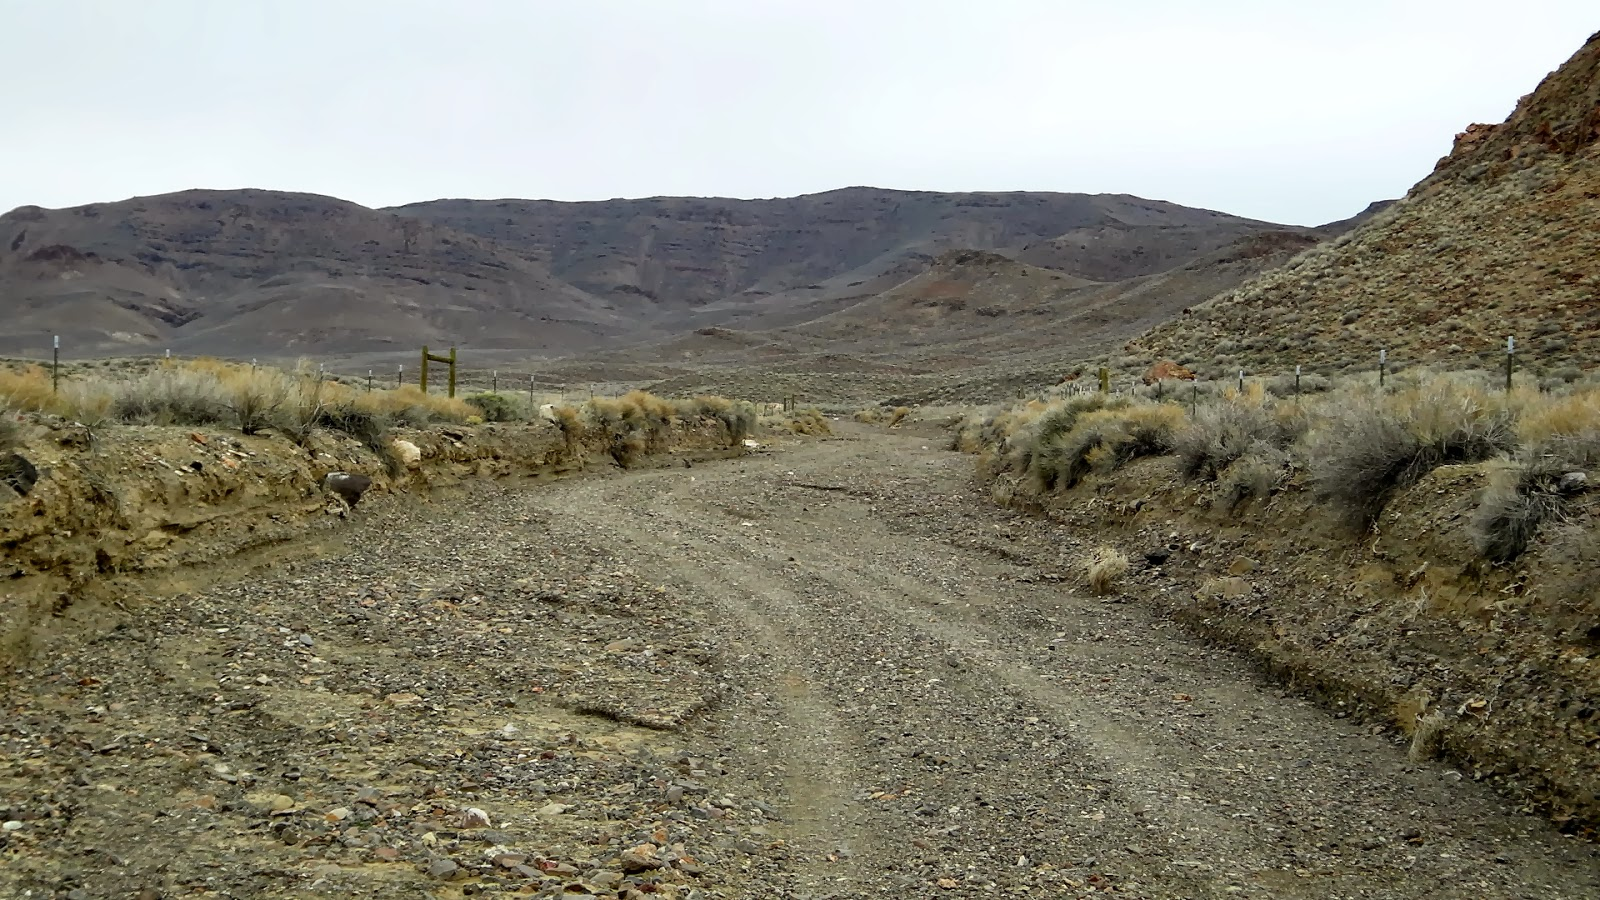 Off Roading Near Me >> The Fly Syndicate: Off Roading in Nevada - The Tungsten Workings of the Nightingale Mining ...